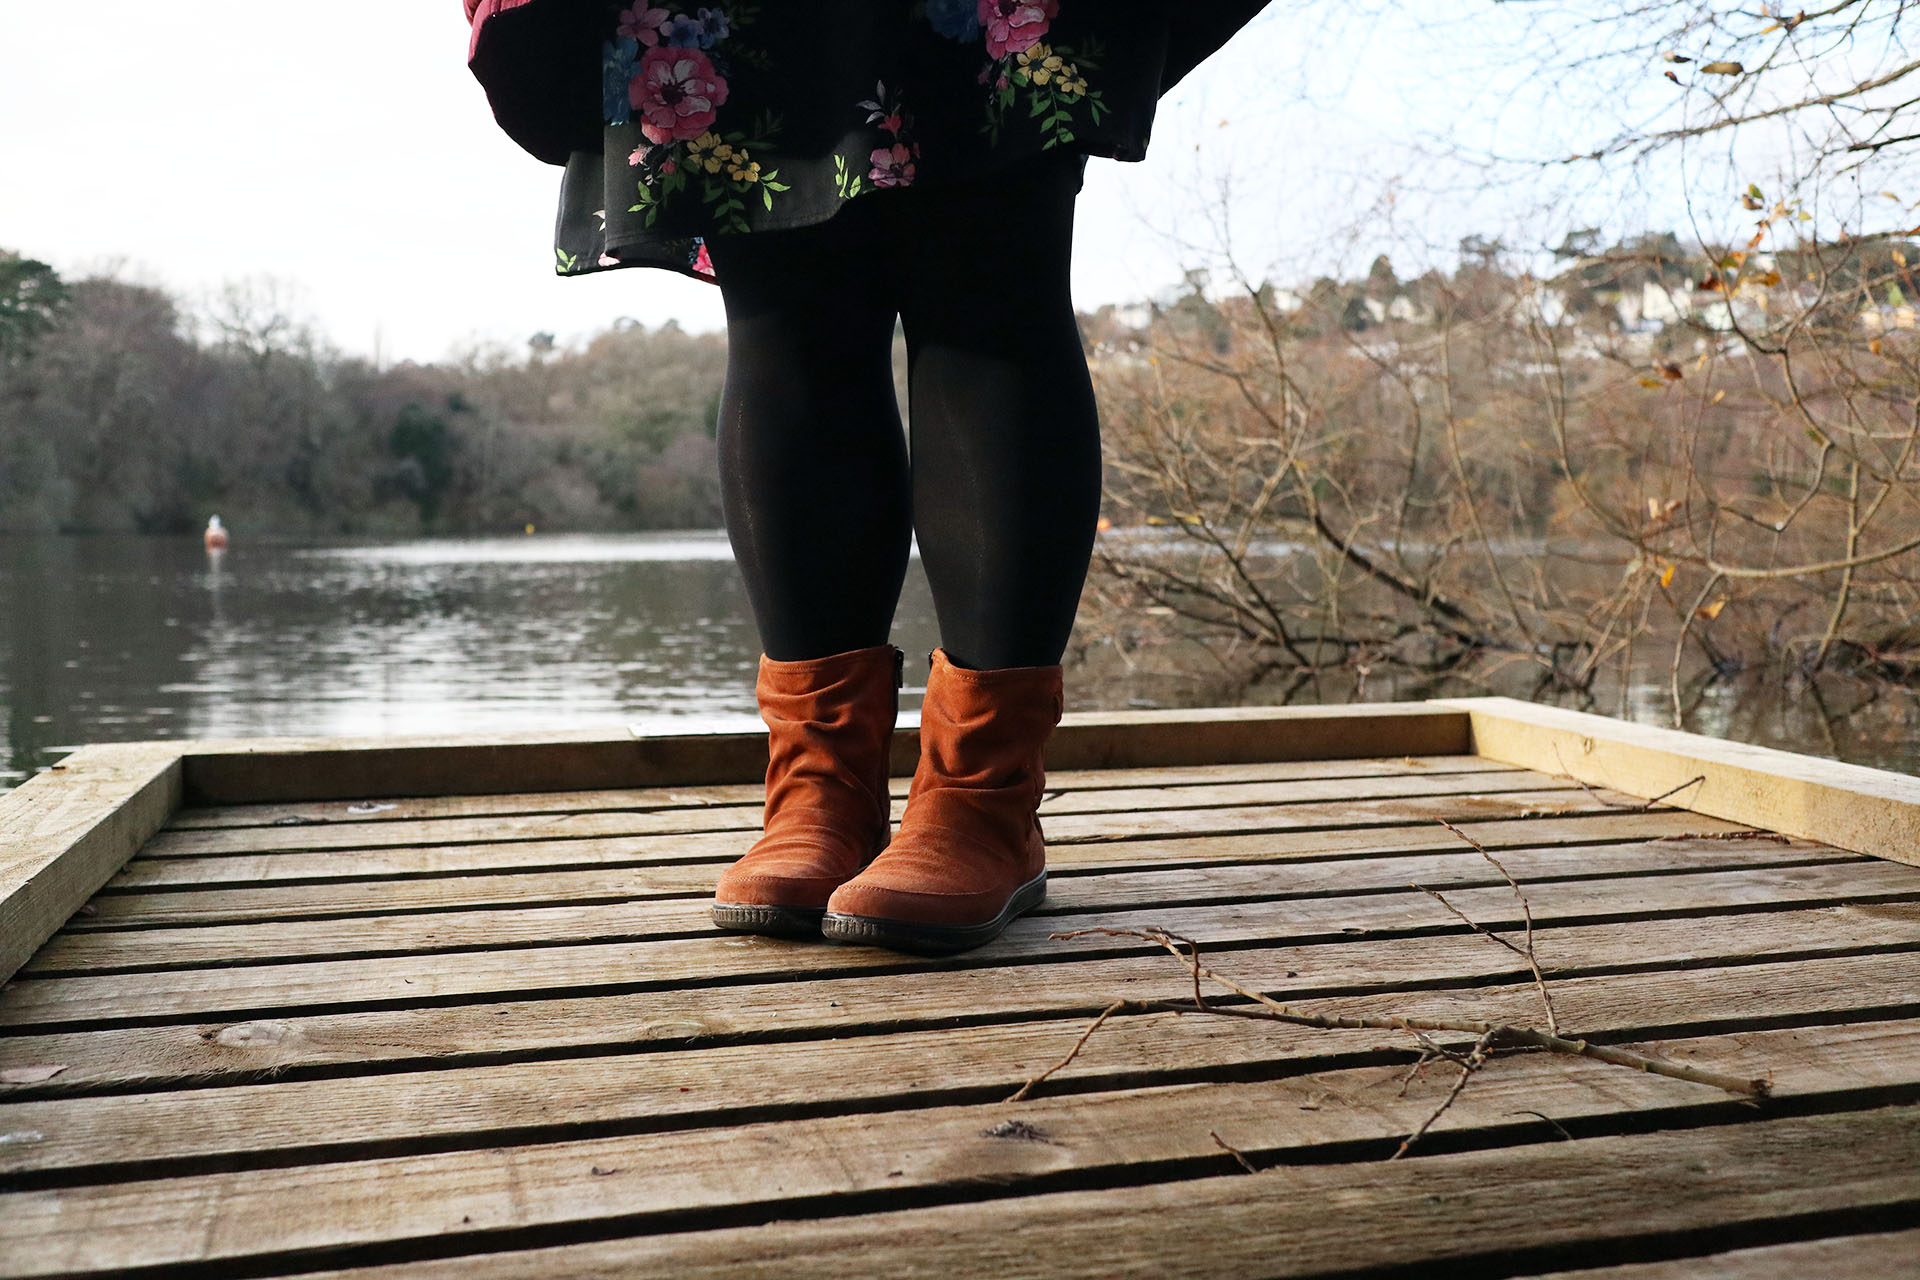 Hotter Shoes Pixie Boots in dark tan, worn by a lake